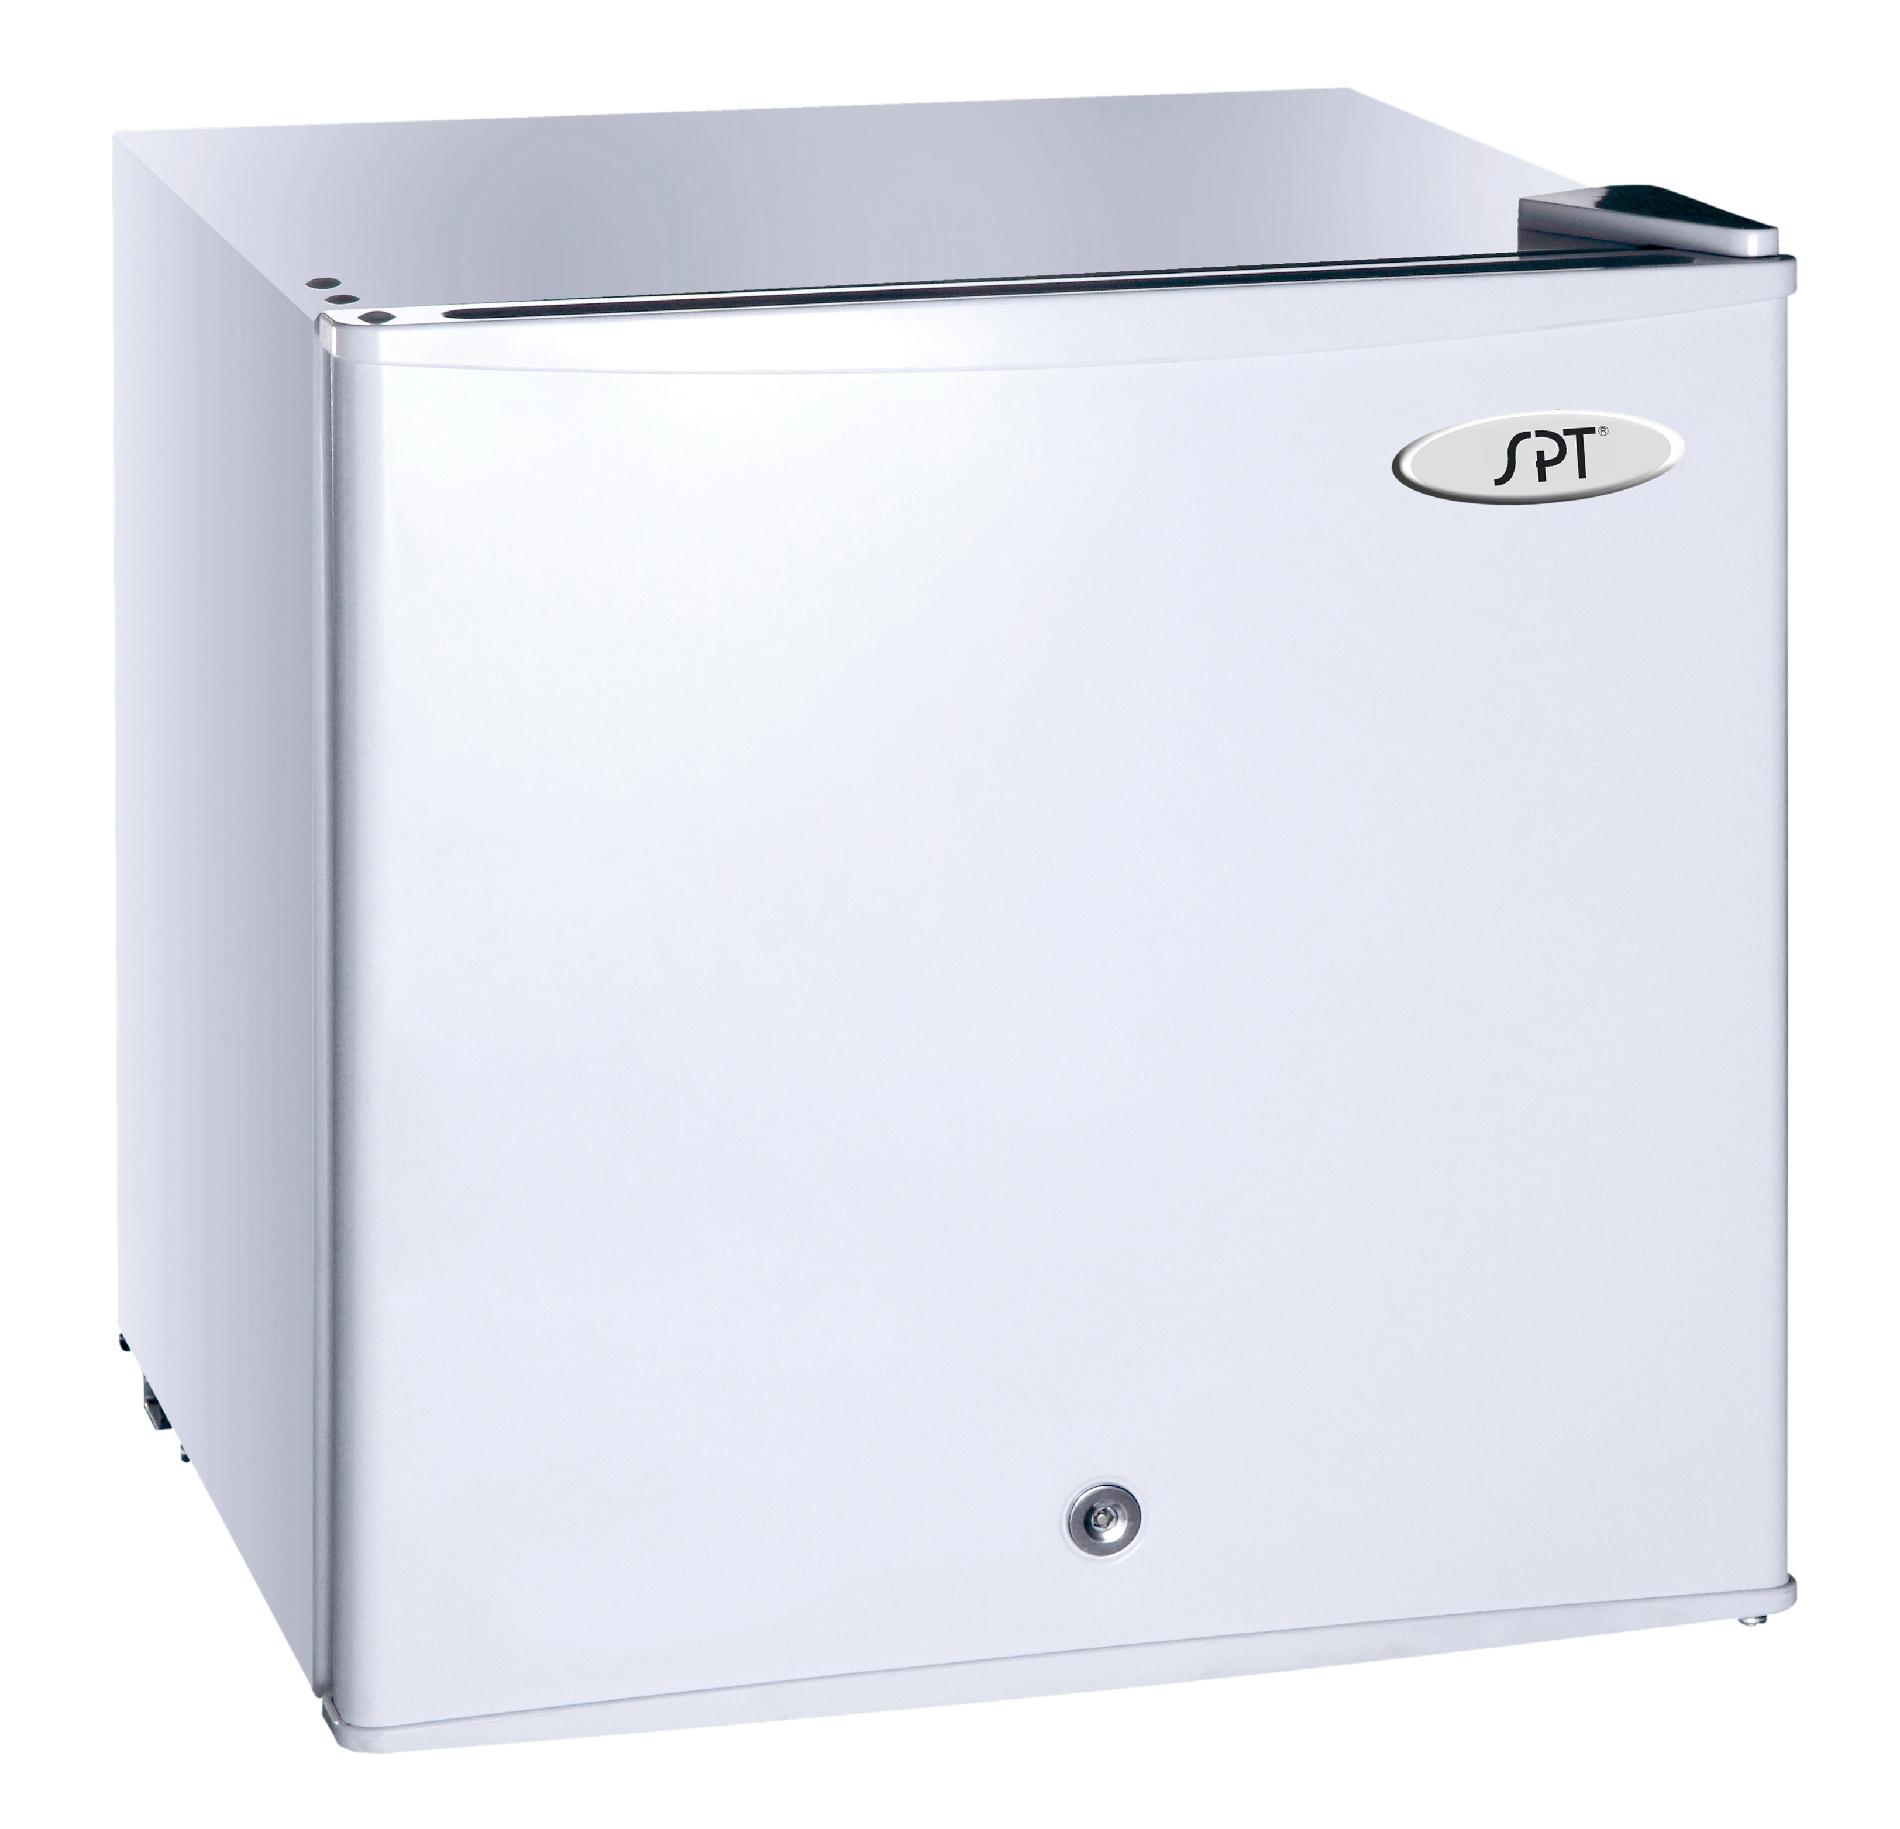 Kmart Freezer Spt Uf 114w 1 1 Cu Ft Upright Freezer In White Energy Star